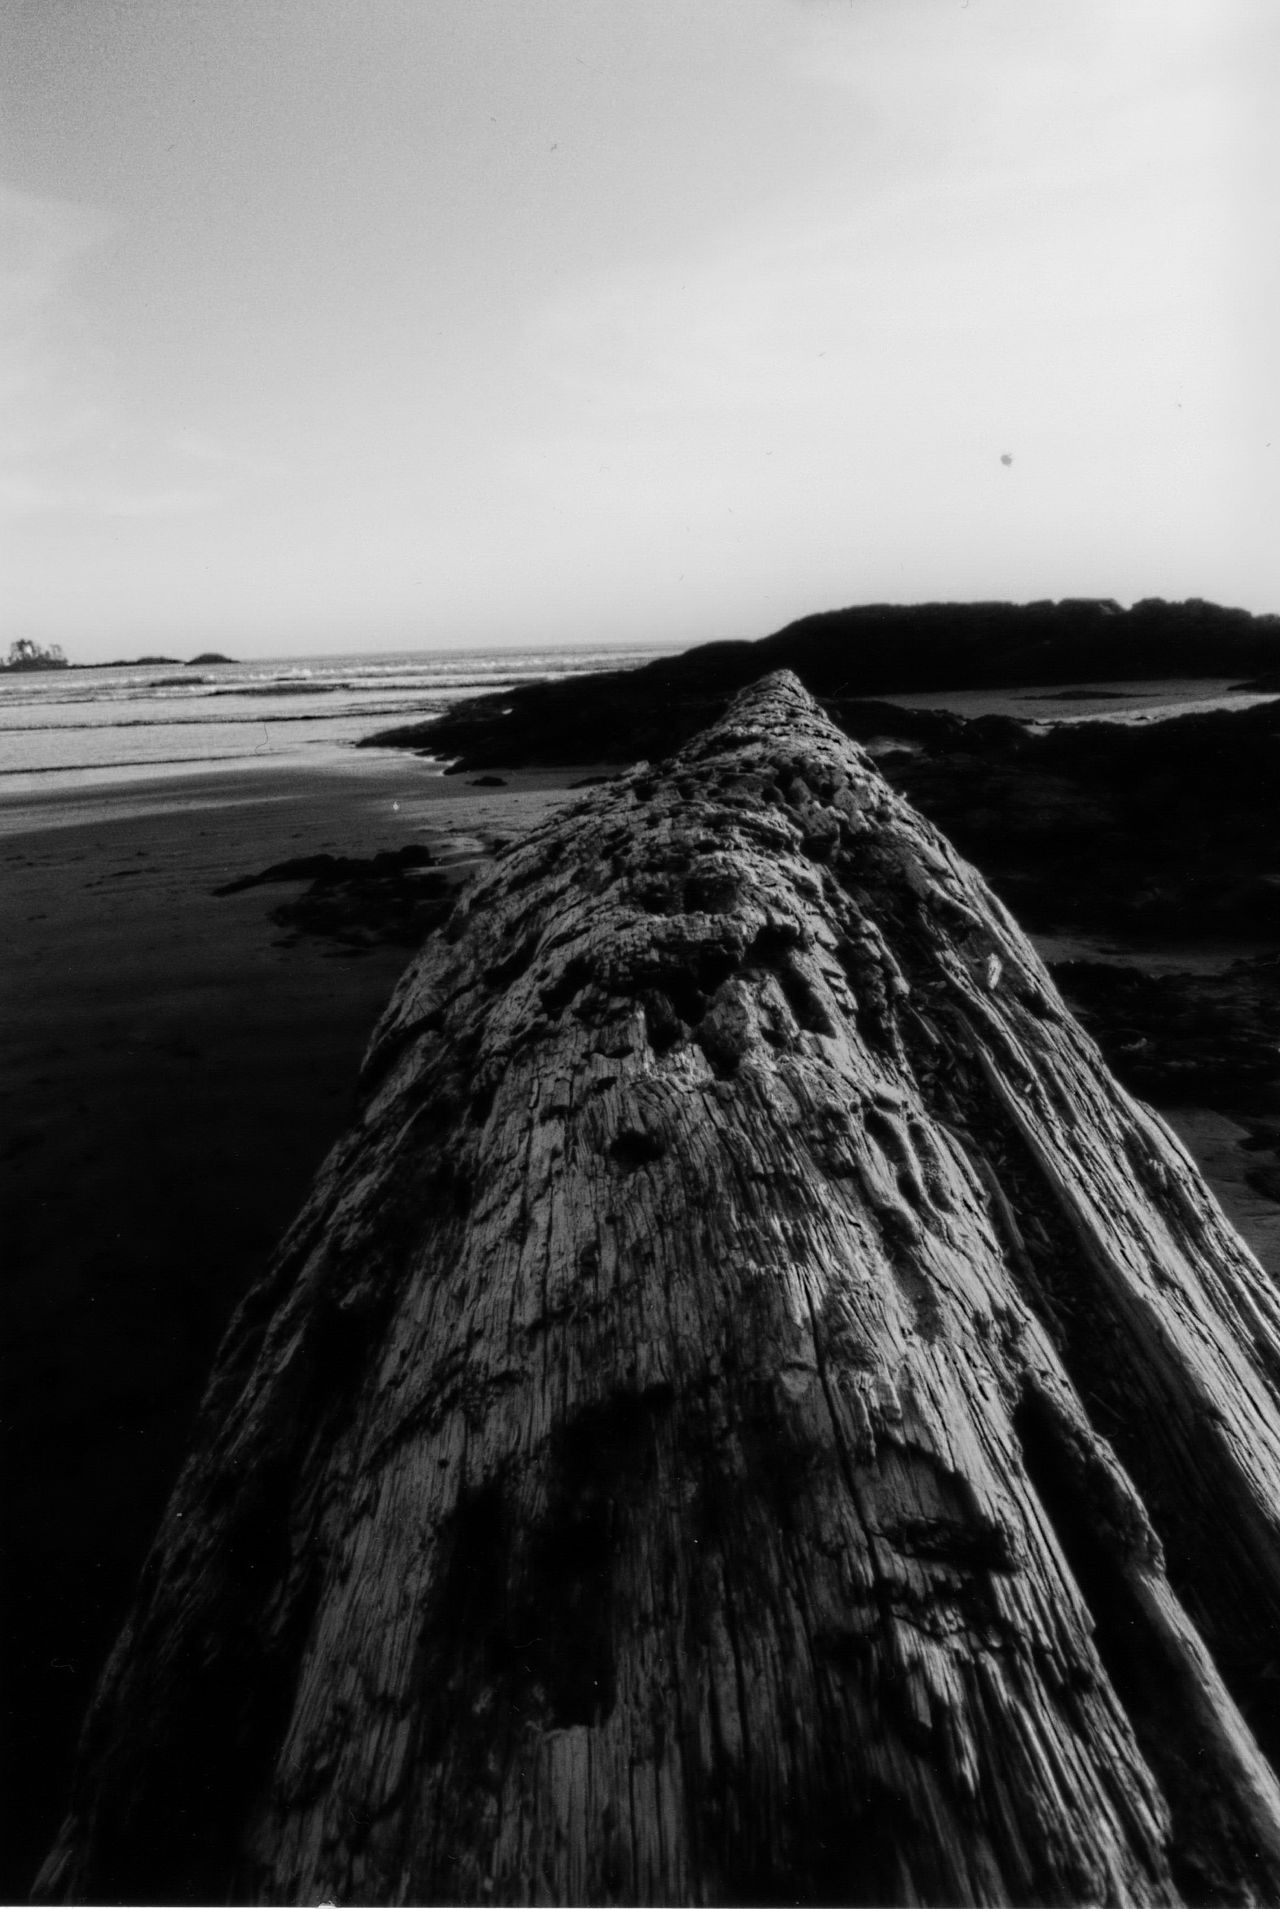 Beauty In Nature Black & White Day Nature No People Sea Sky Tranquil Scene Vancouver Island Canada Wood